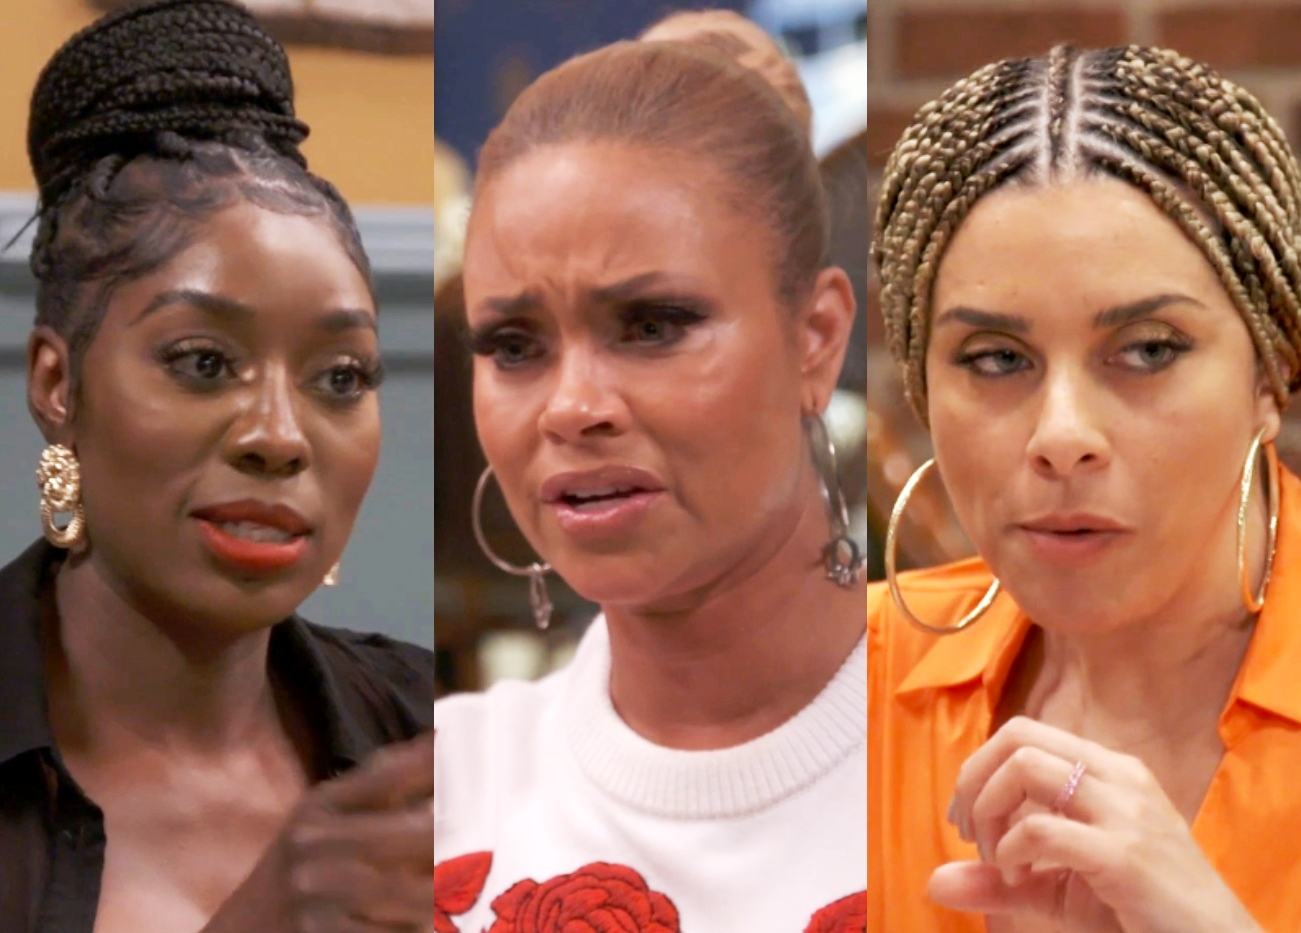 """RHOP Recap: Gizelle and Robyn Question Wendy About Her """"Sudden Change"""" and Suggest She 'Lacks Substance' as Robyn Opens Up About Her """"Seasonal Depression"""""""